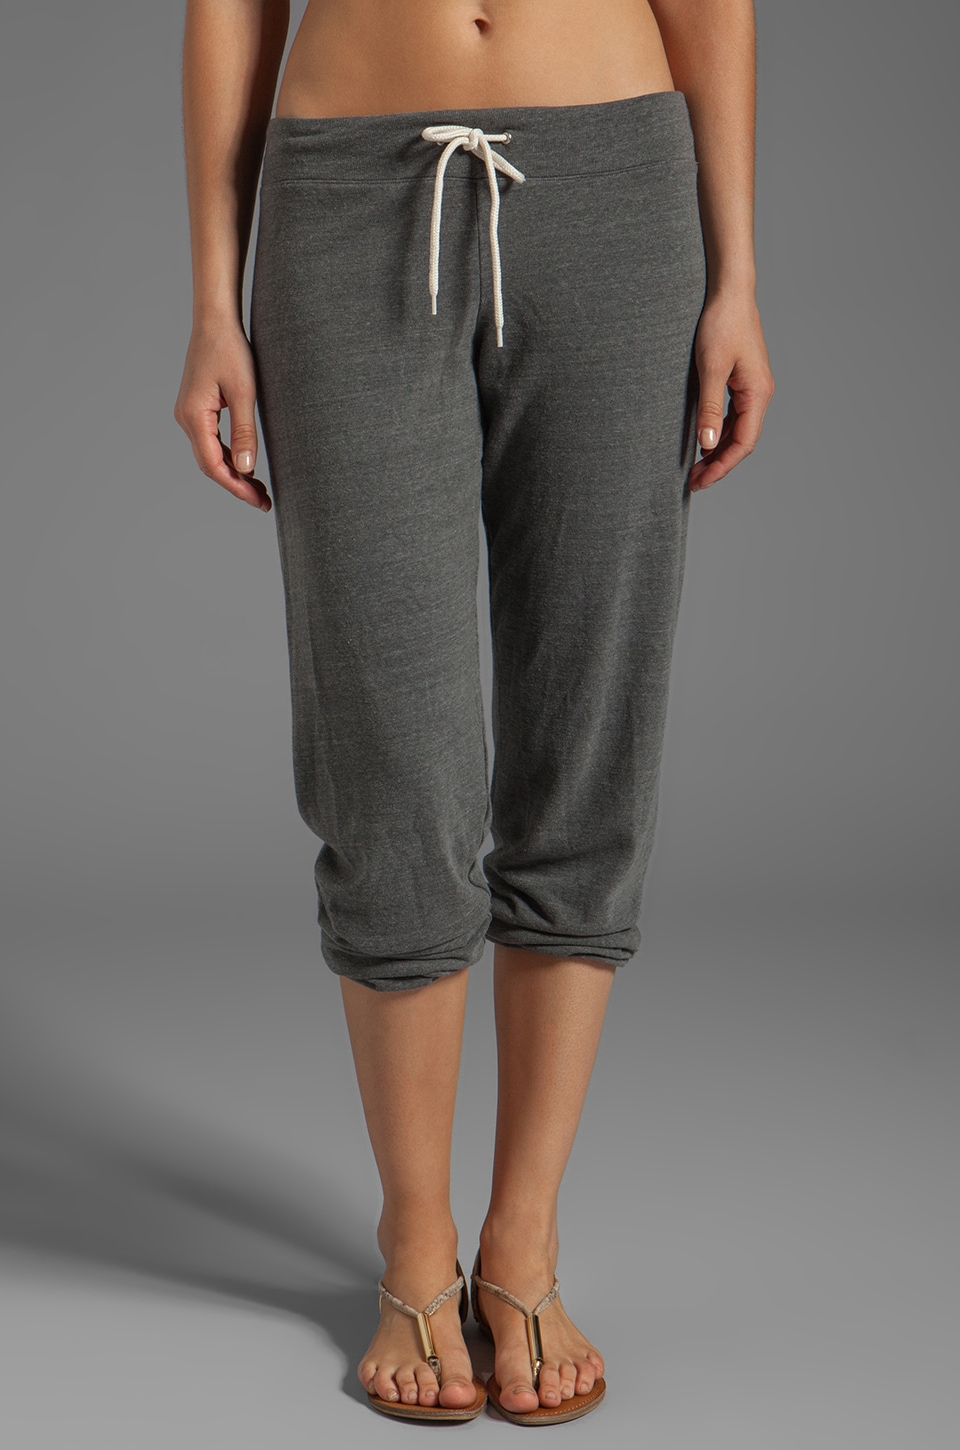 MONROW Vintage Fleece Sweats in Elephant